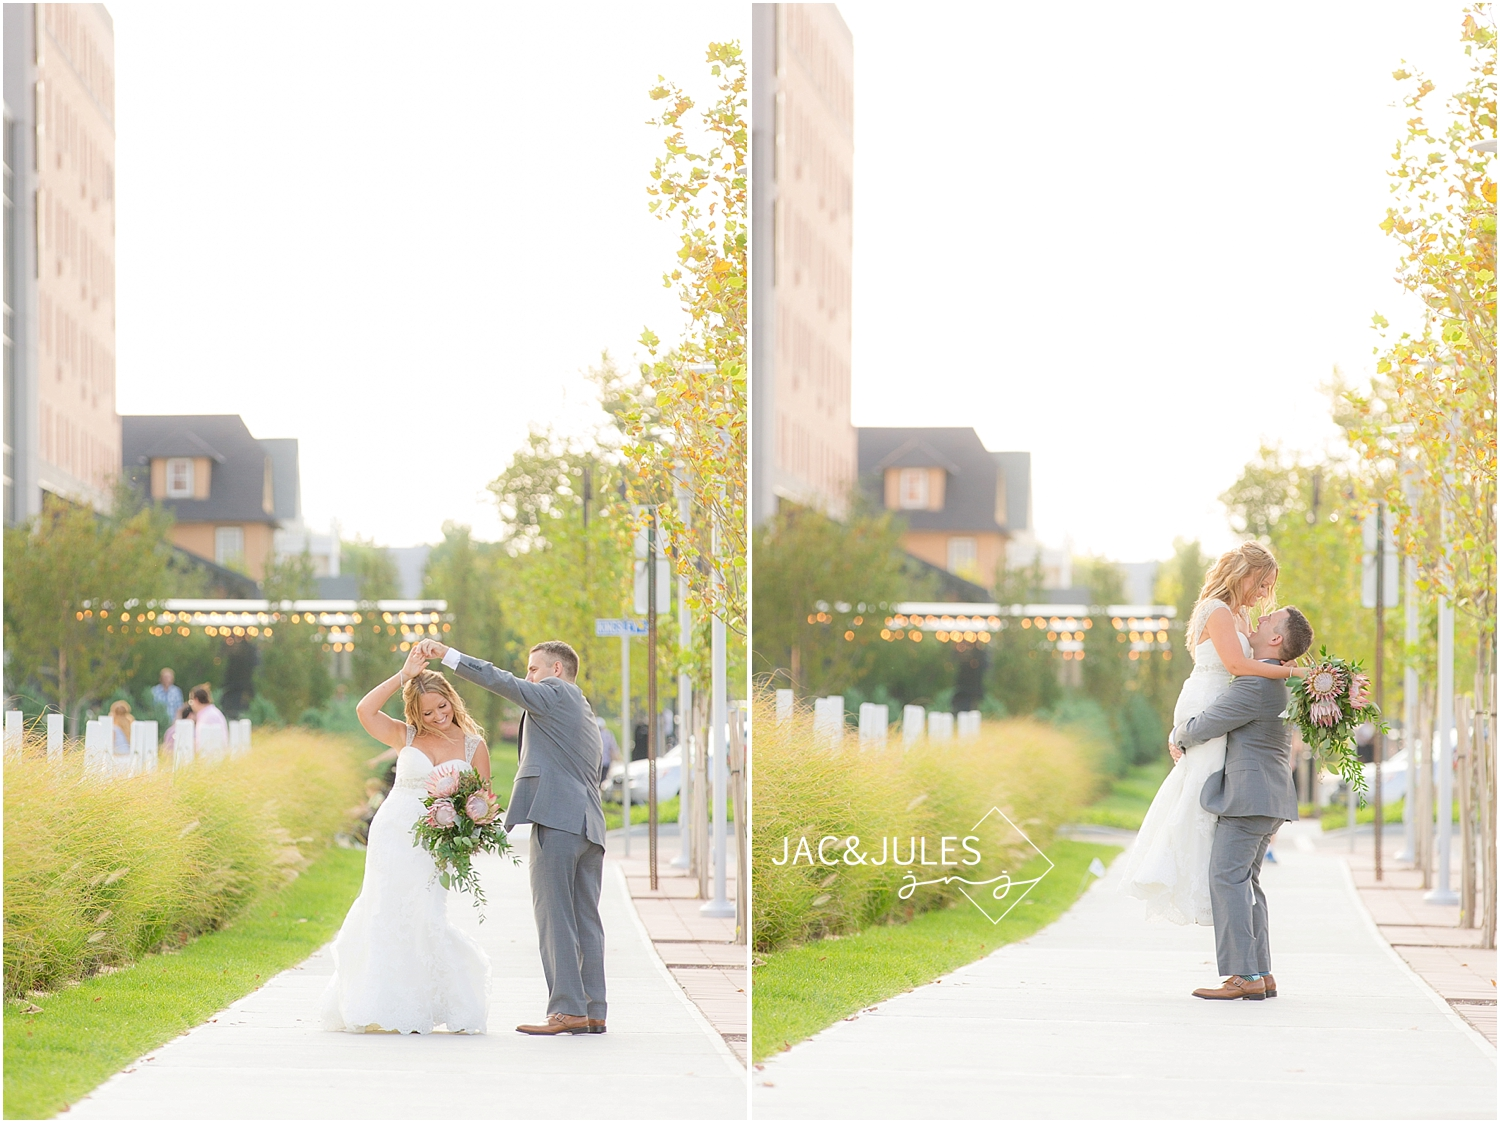 jacnjules photographs bride and groom at the Asbury Hotel